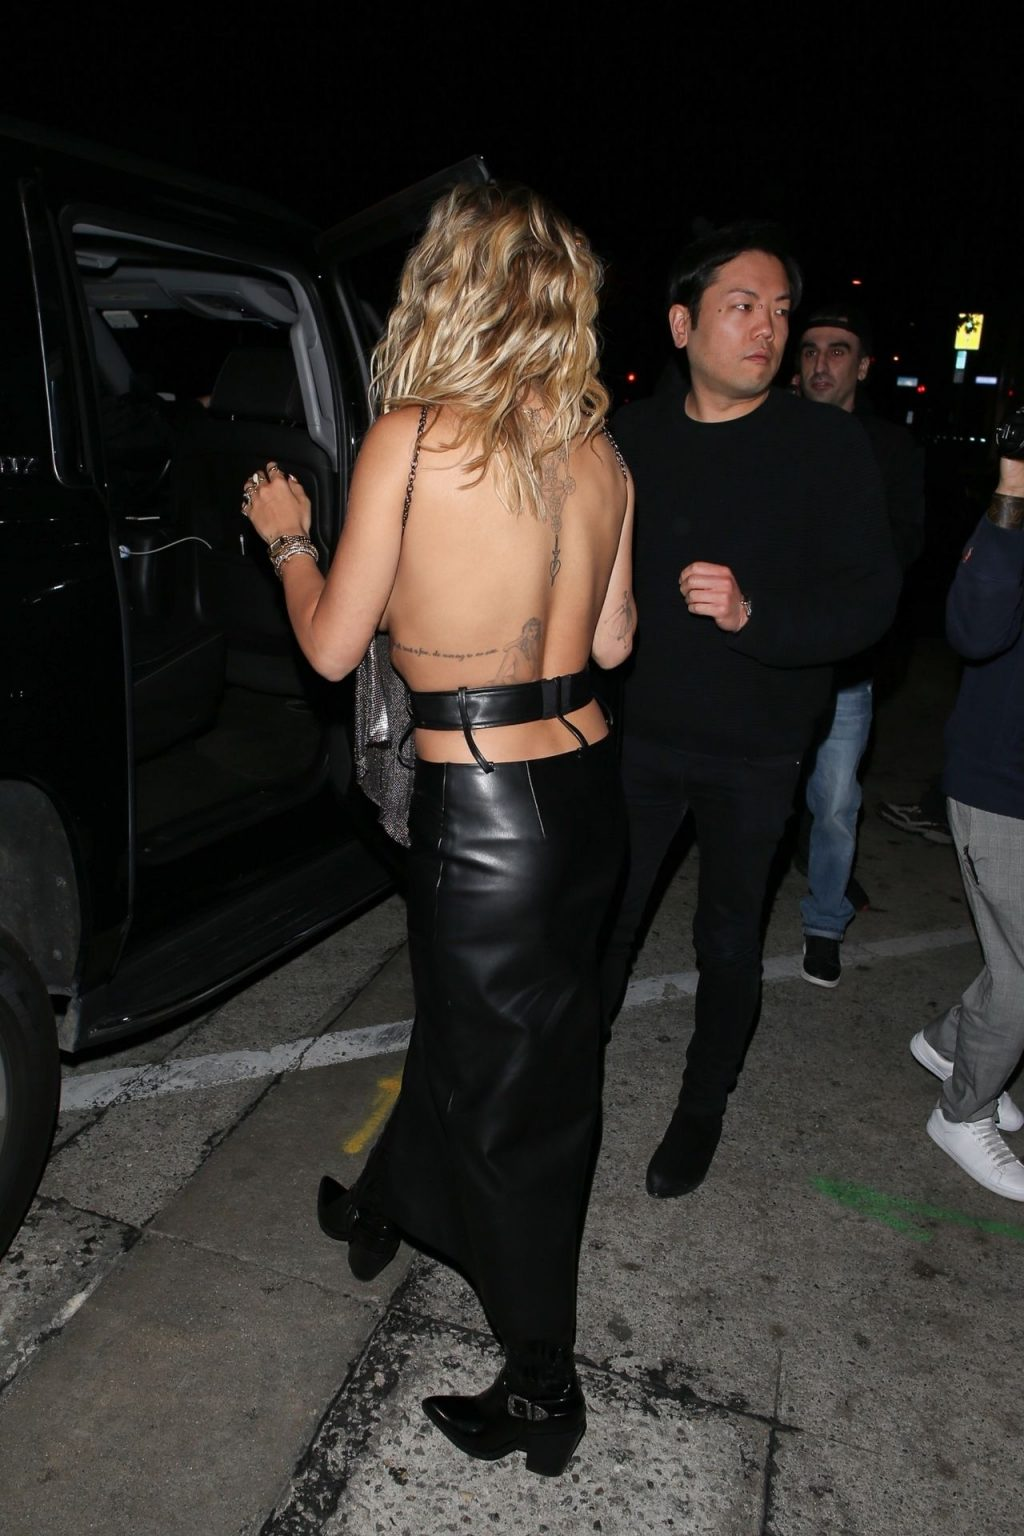 Rita Ora Arrives at Craig's in a Sexy Backless See-Through Top (79 Photos)